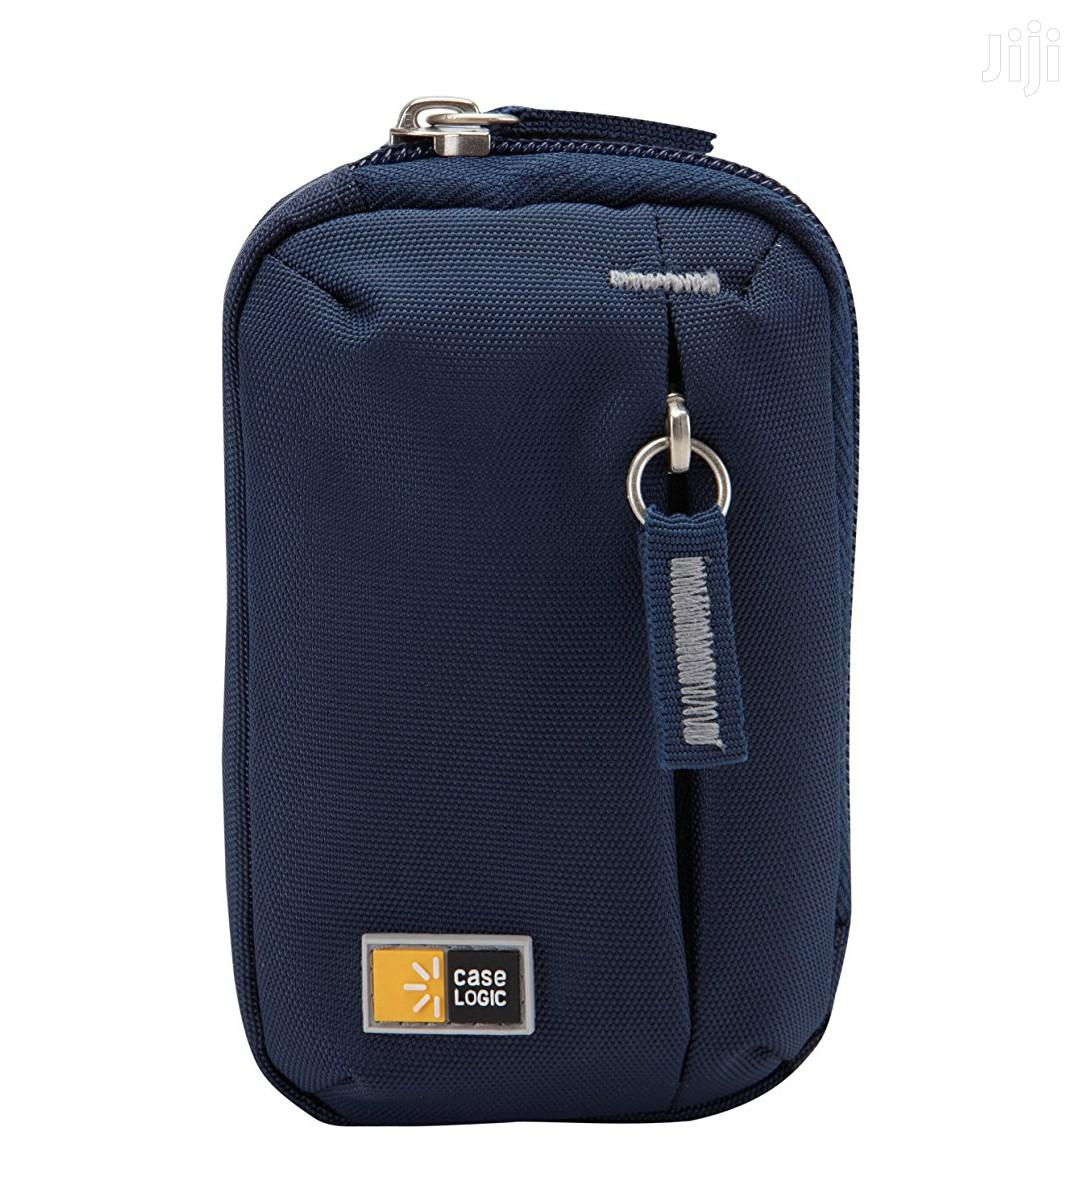 Case Logic TBC-302 Ultra Compact Camera Case From USA | Accessories & Supplies for Electronics for sale in North Labone, Greater Accra, Ghana